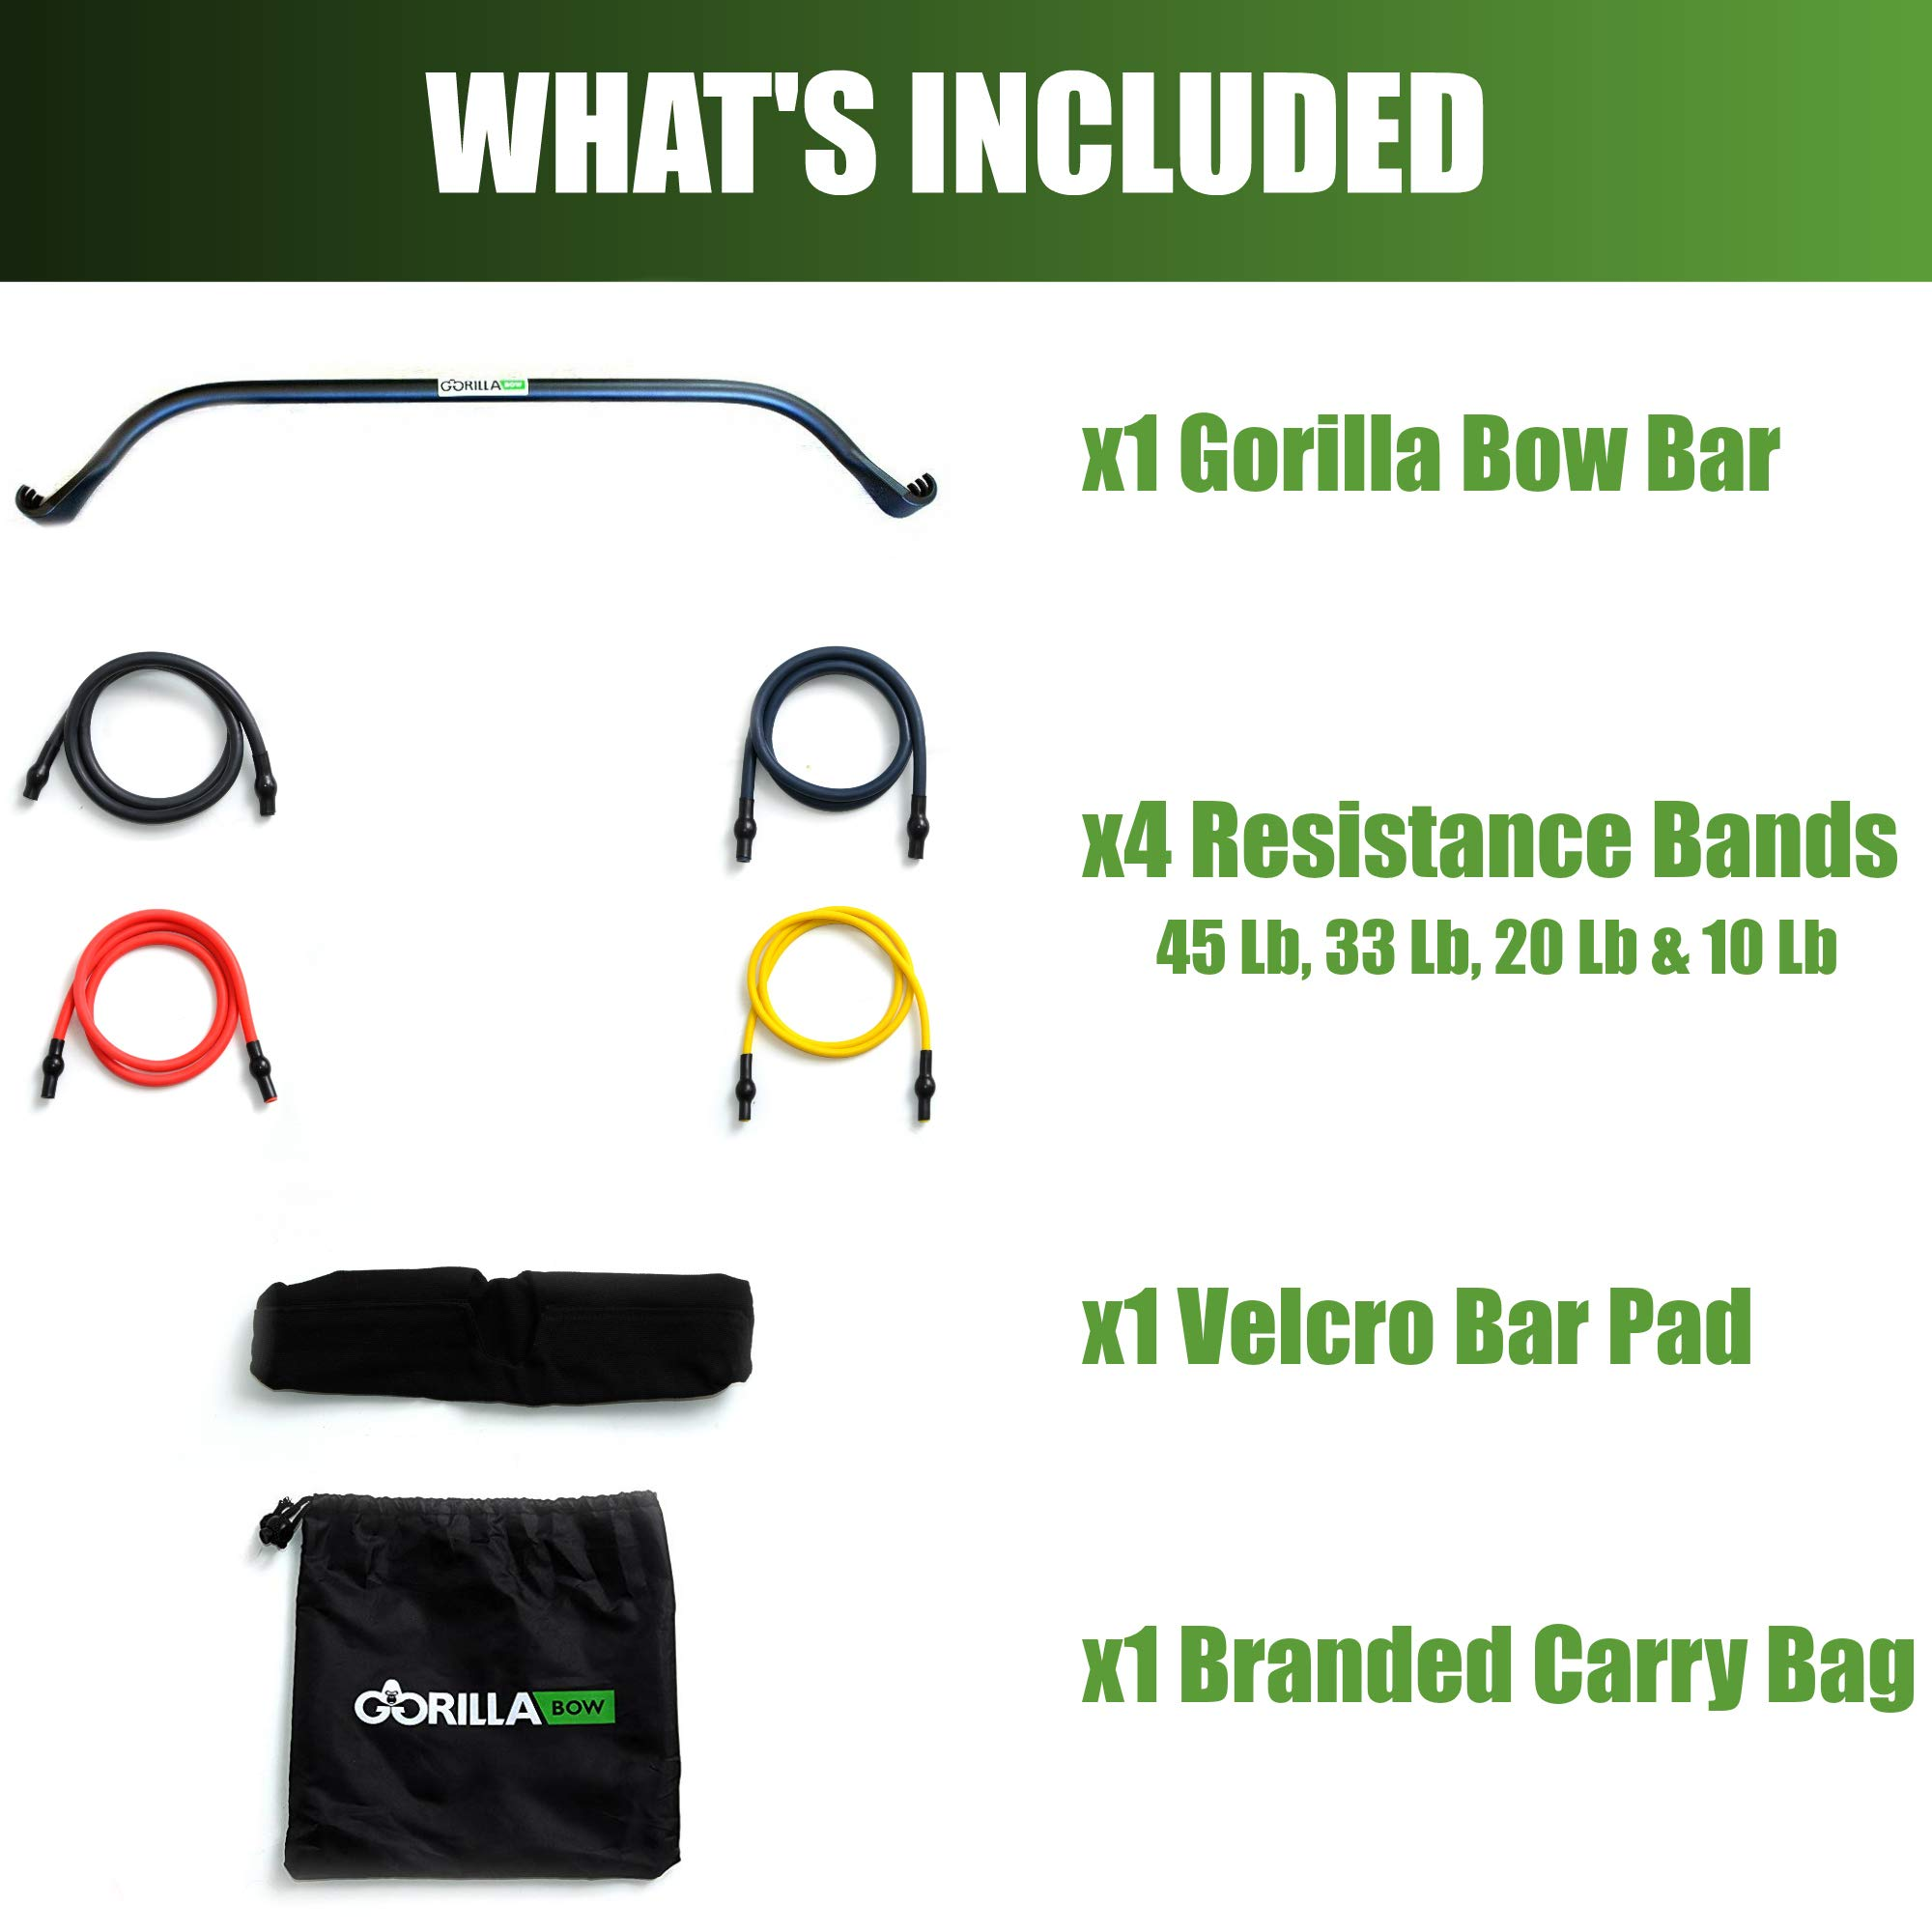 Gorilla Bow Portable Home Gym Resistance Band System | Weightlifting & HIIT Interval Training Kit | Full Body Workout Equipment (Black) by Gorilla Fitness (Image #2)